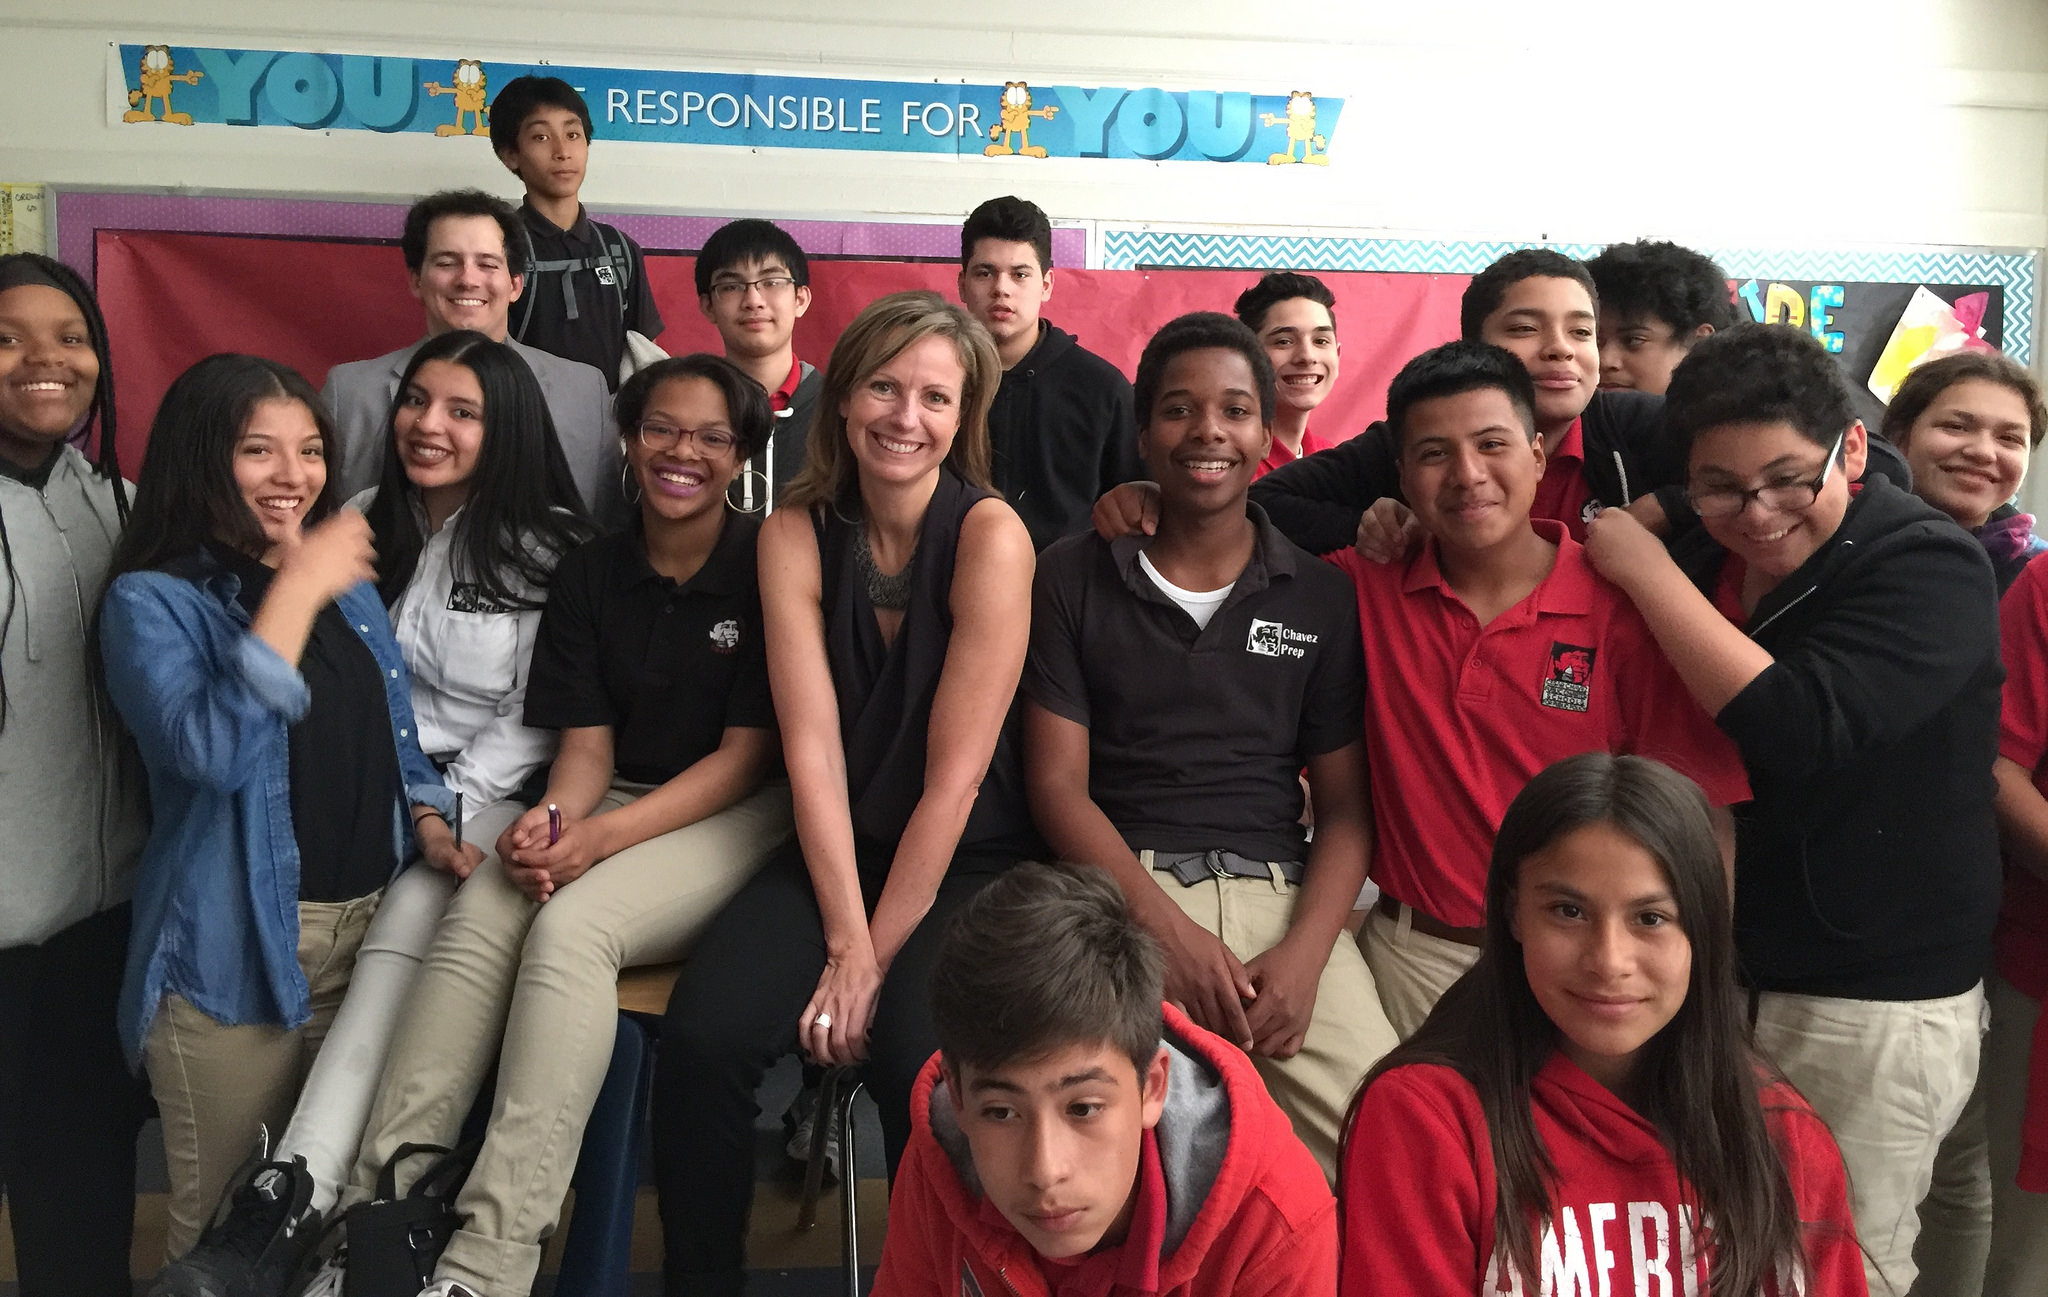 Michelle Shephard and students. Click photo to see full album.